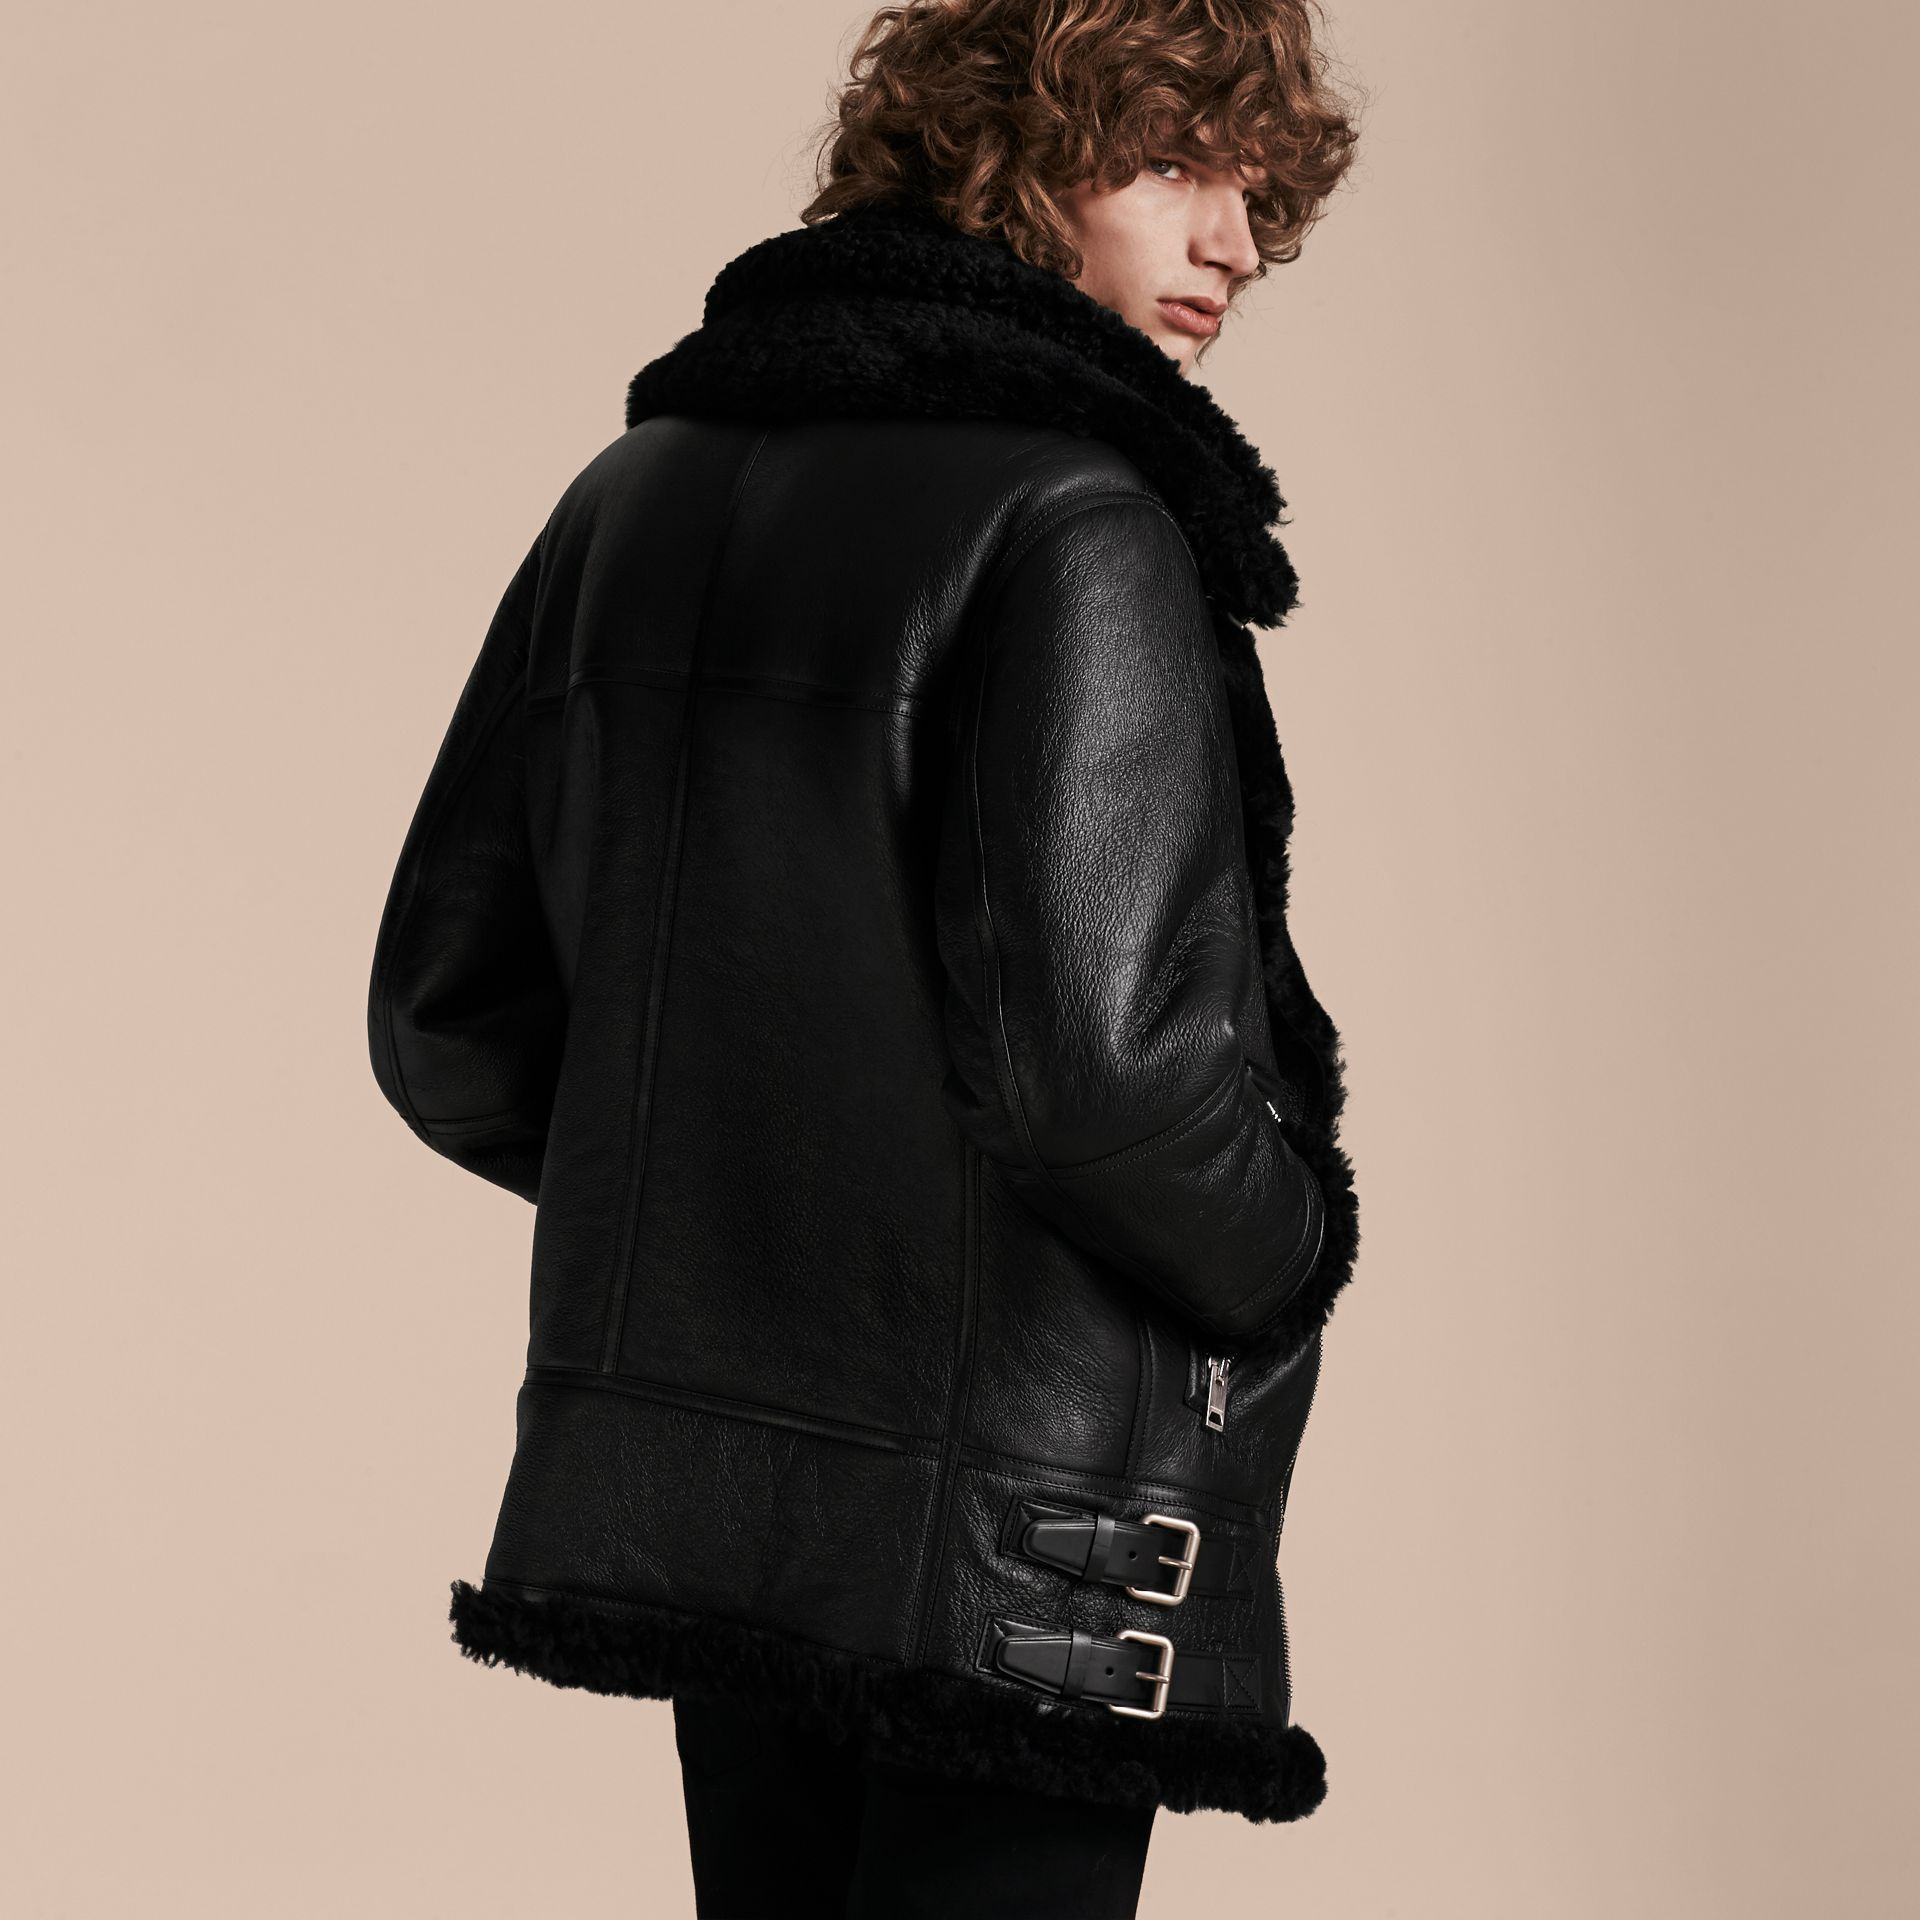 Black Long-line Shearling Aviator Jacket with Zip-out Bib - gallery image 3